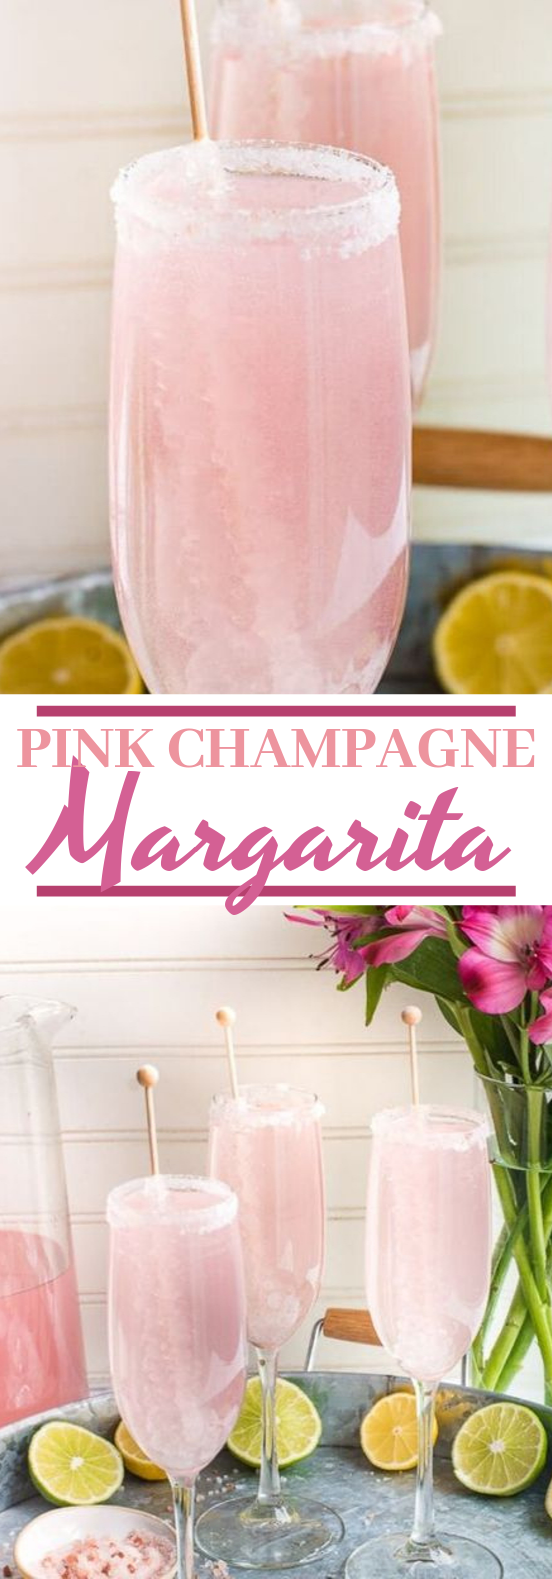 Pink Champagne Margarita #drinks #cocktails